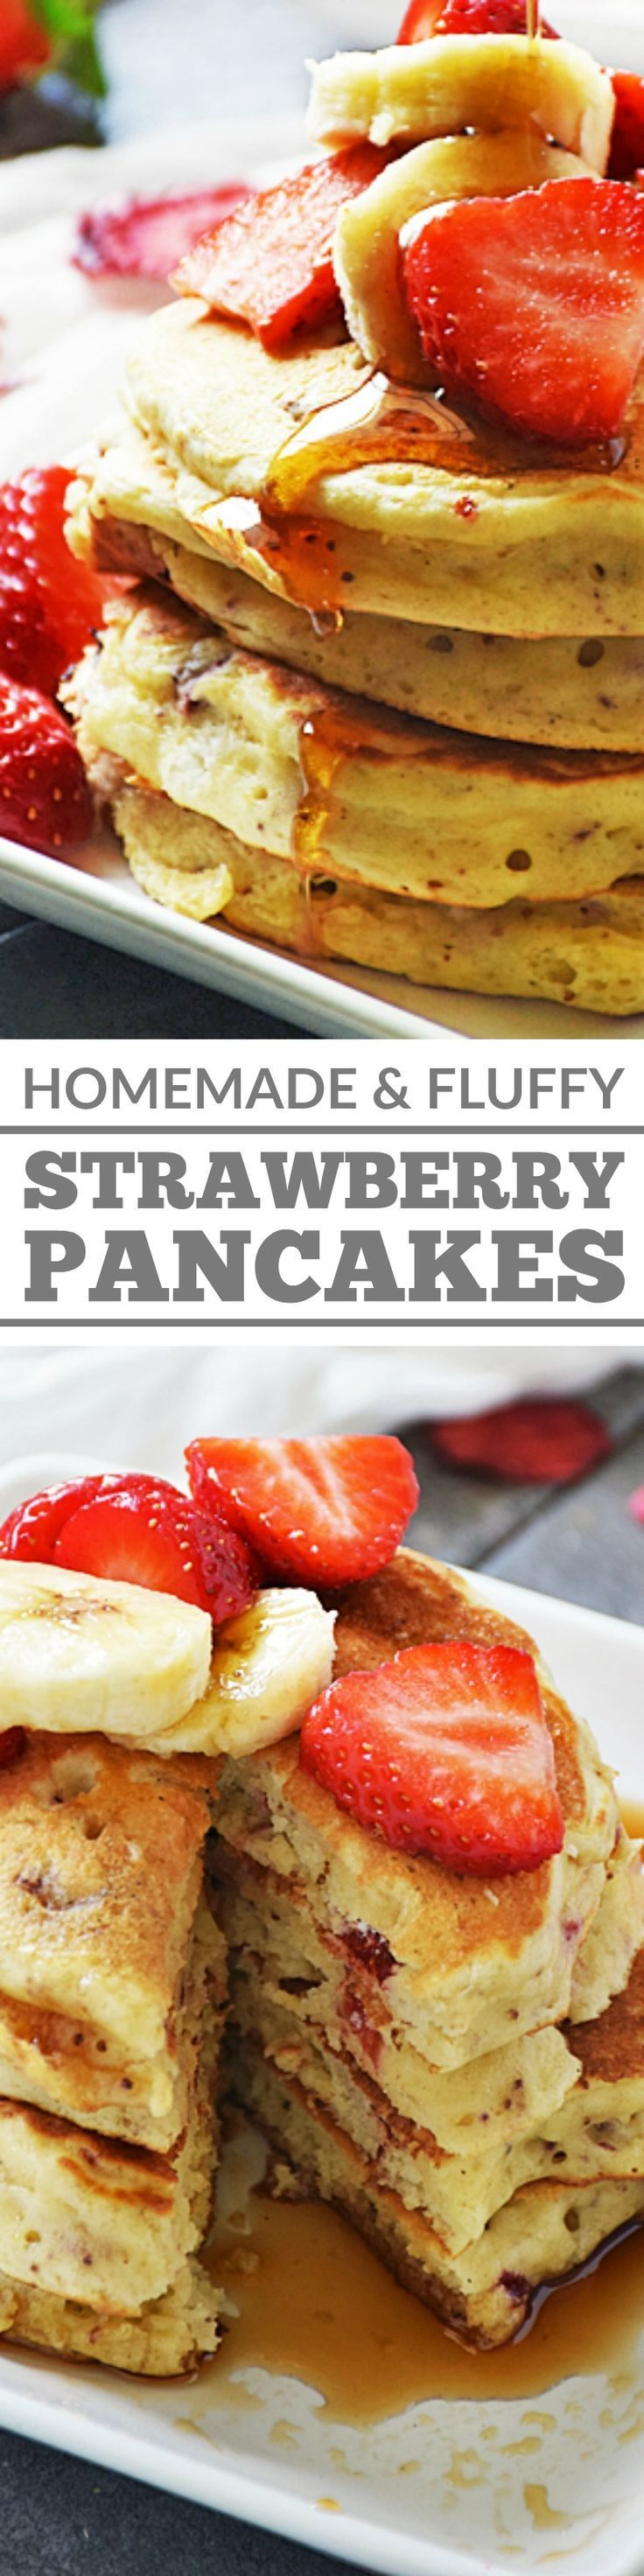 Strawberry Pancakes dotted with homemade dried strawberries and drizzled with pure maple syrup is a hearty and delicious way to start the day. This easy recipe is sure to be a family favorite! Learn how to preserve strawberries. Make dried strawberries at home to use in baking and for snacking.